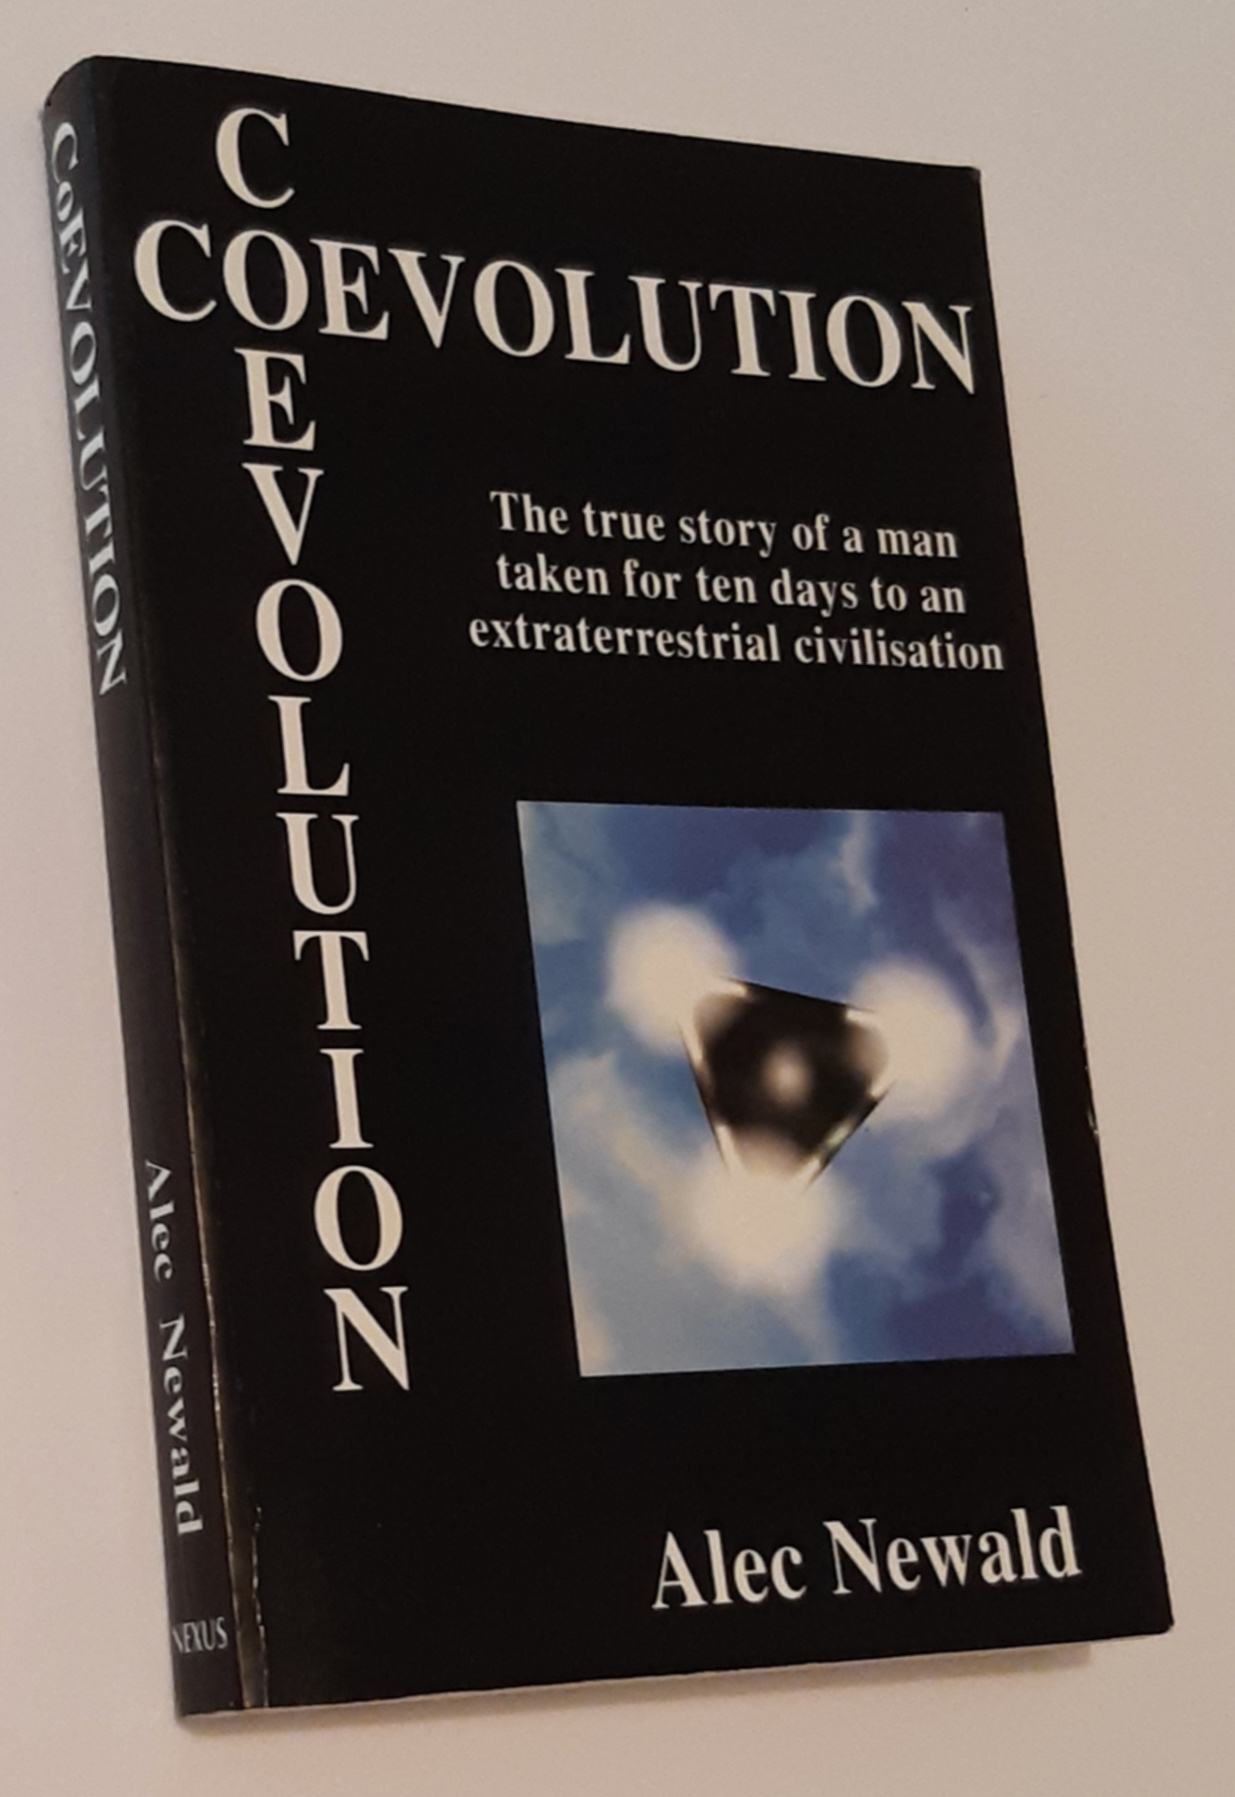 Image for CoEVOLUTION: The True Story of a Man Taken for Ten Days to an Extraterrestrial Civiilisation (First Printing)